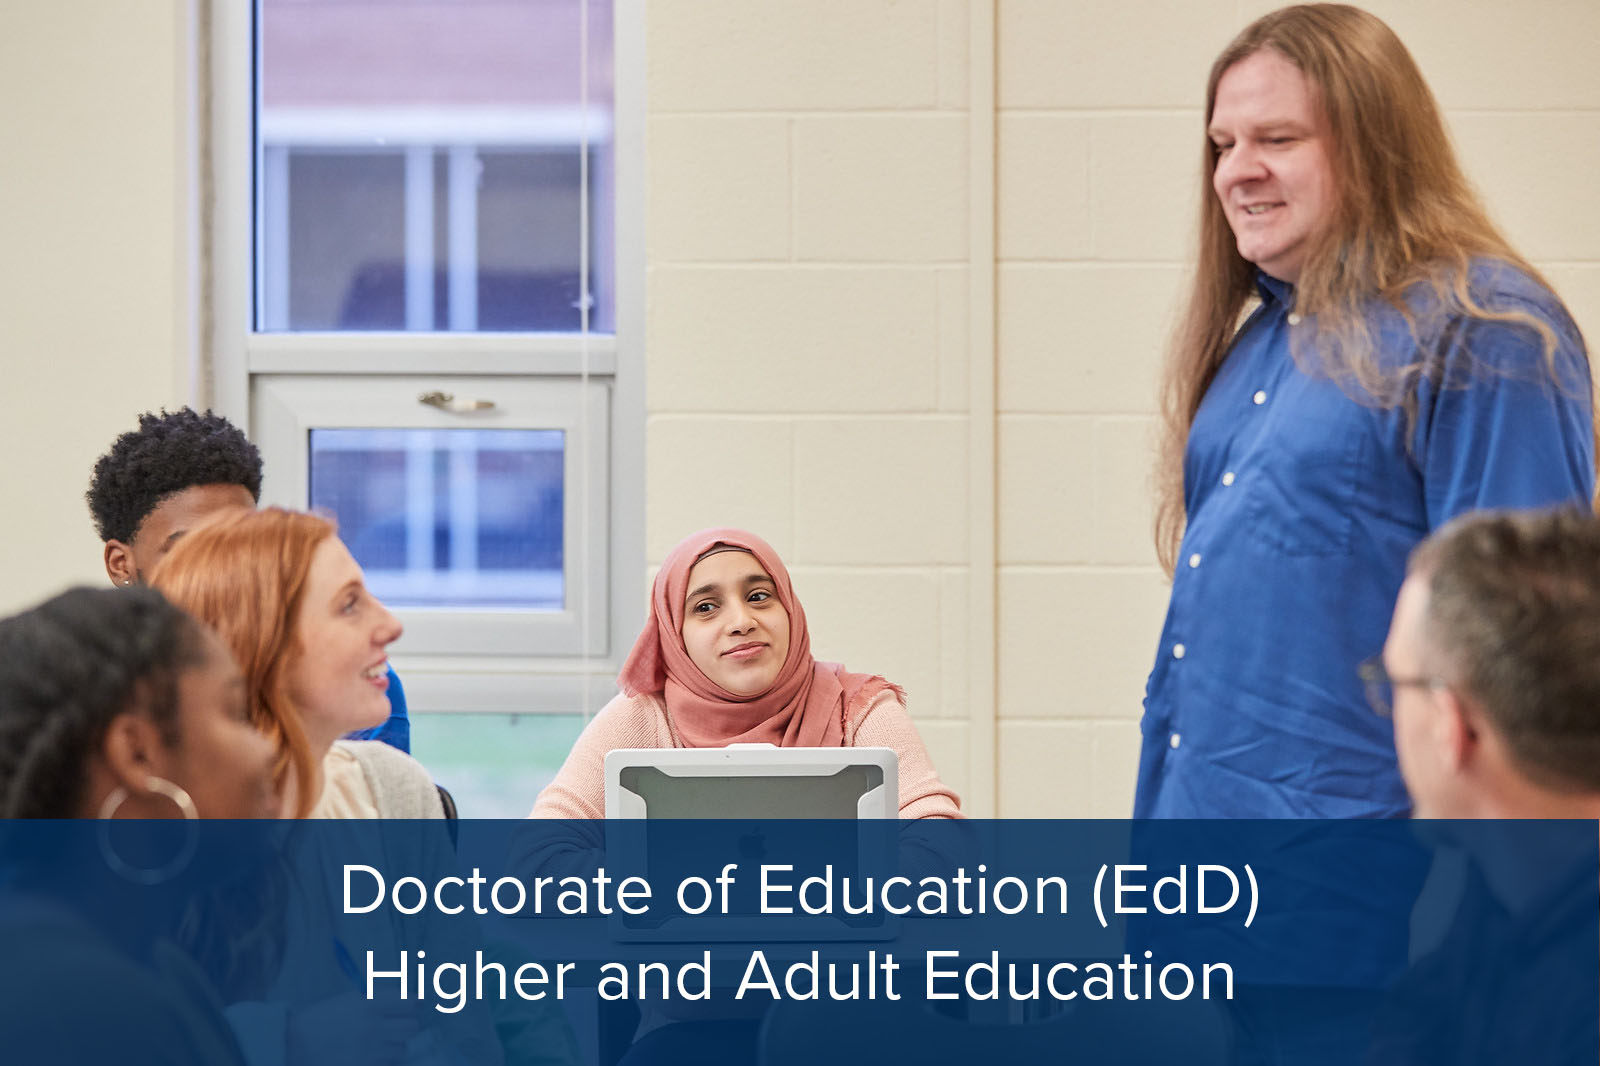 Doctorate of Education (EdD) in Higher and Adult Education